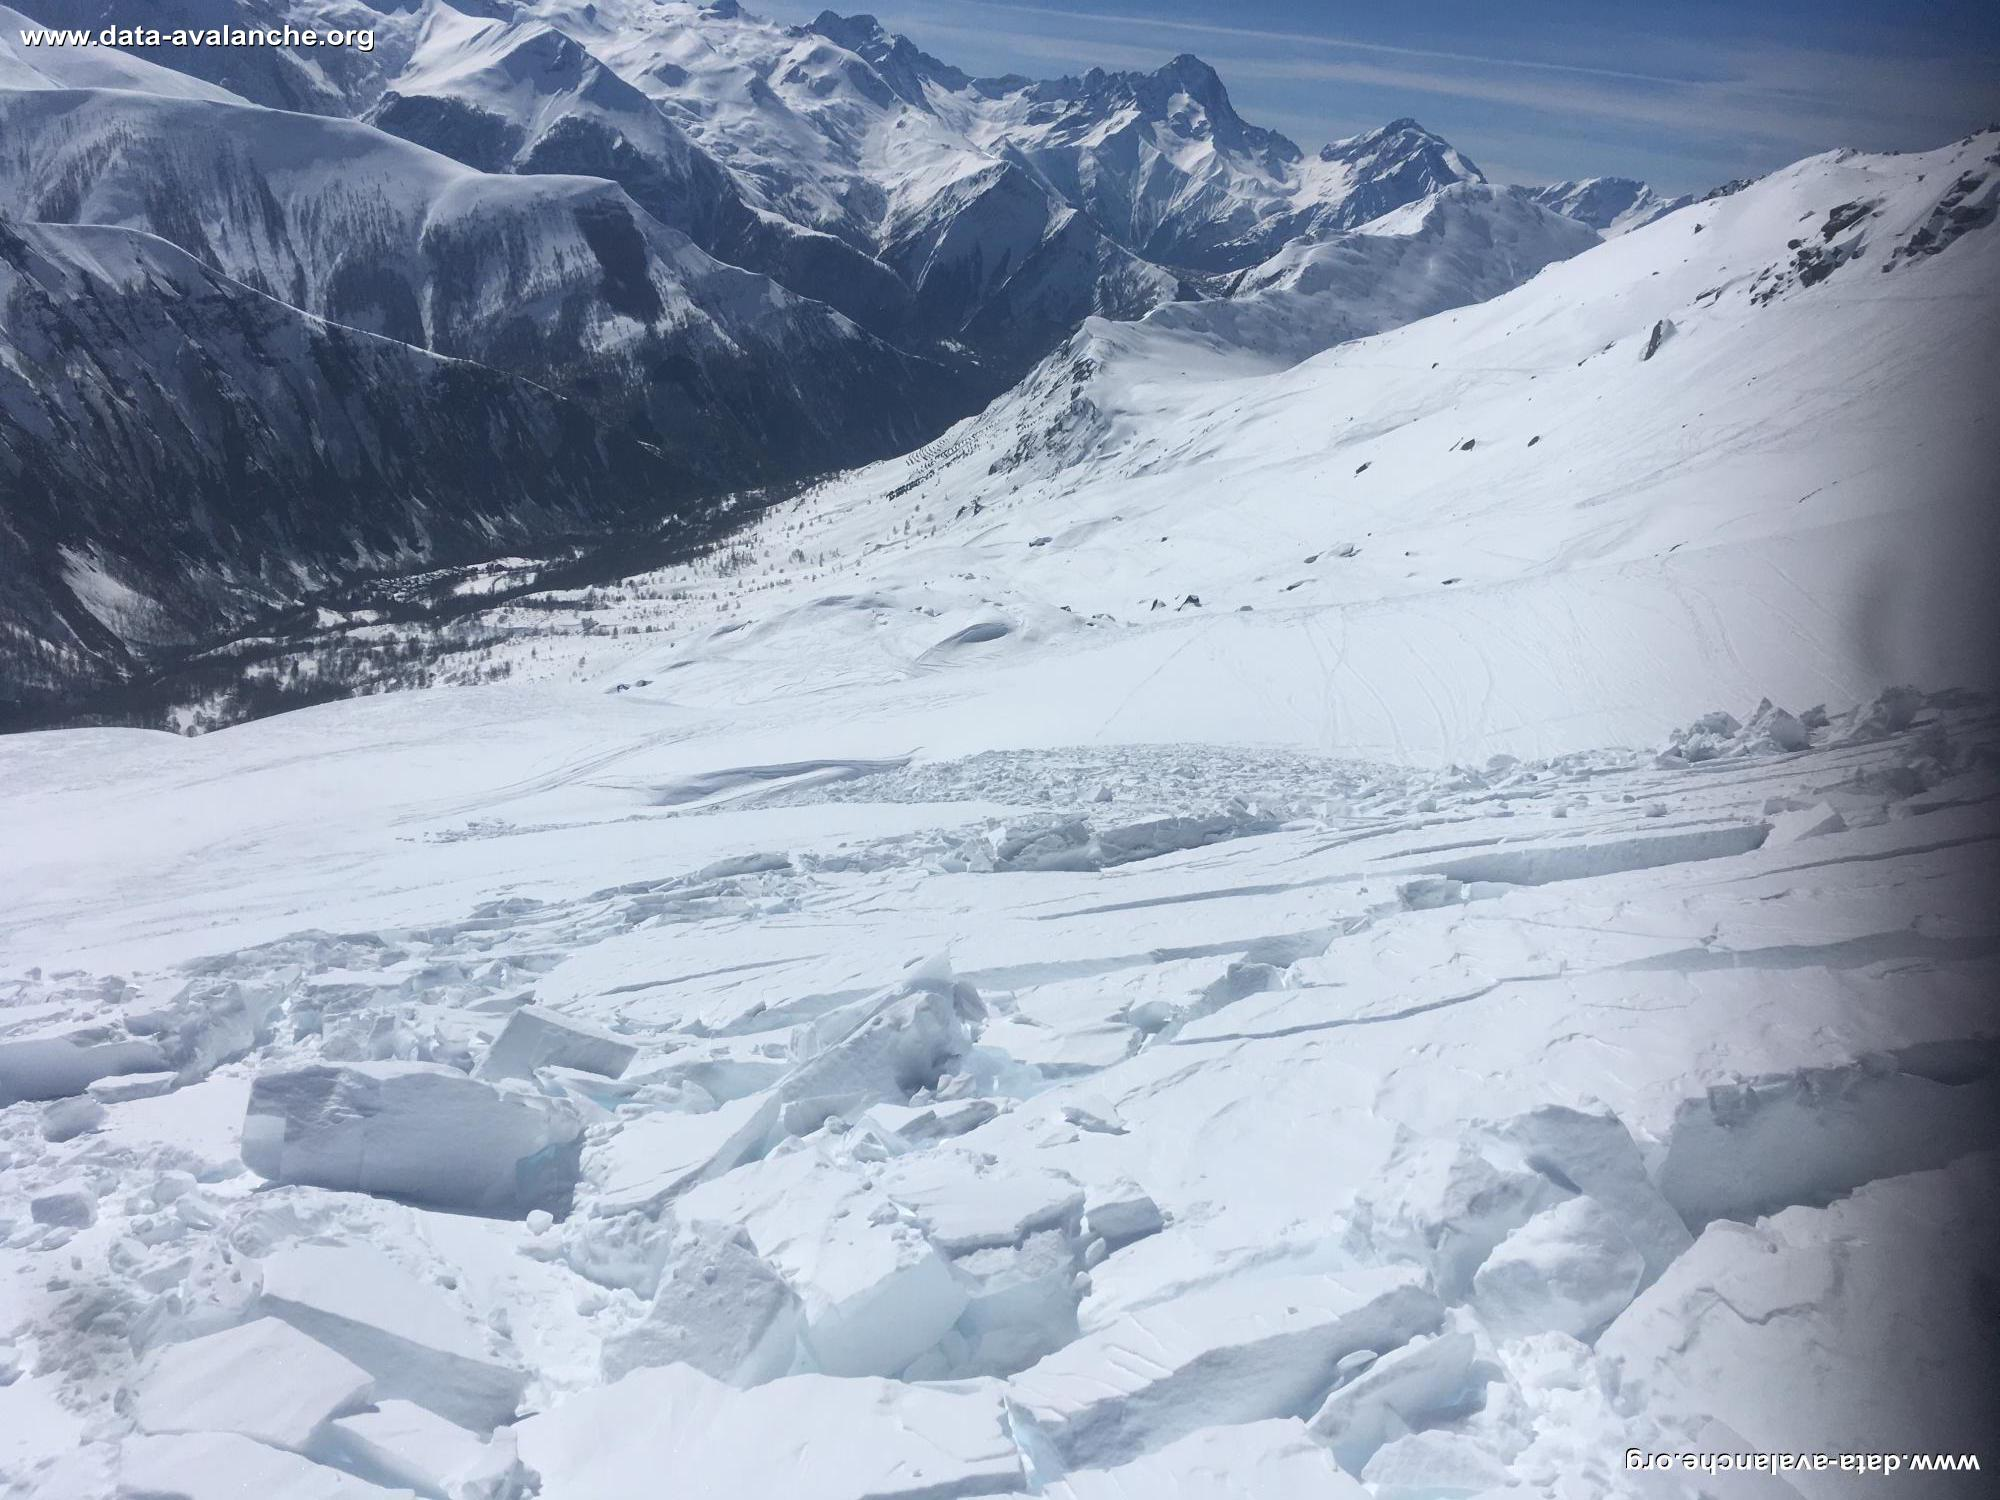 Avalanche Grandes Rousses, secteur Alpe d'Huez, Grand sablât - Photo 1